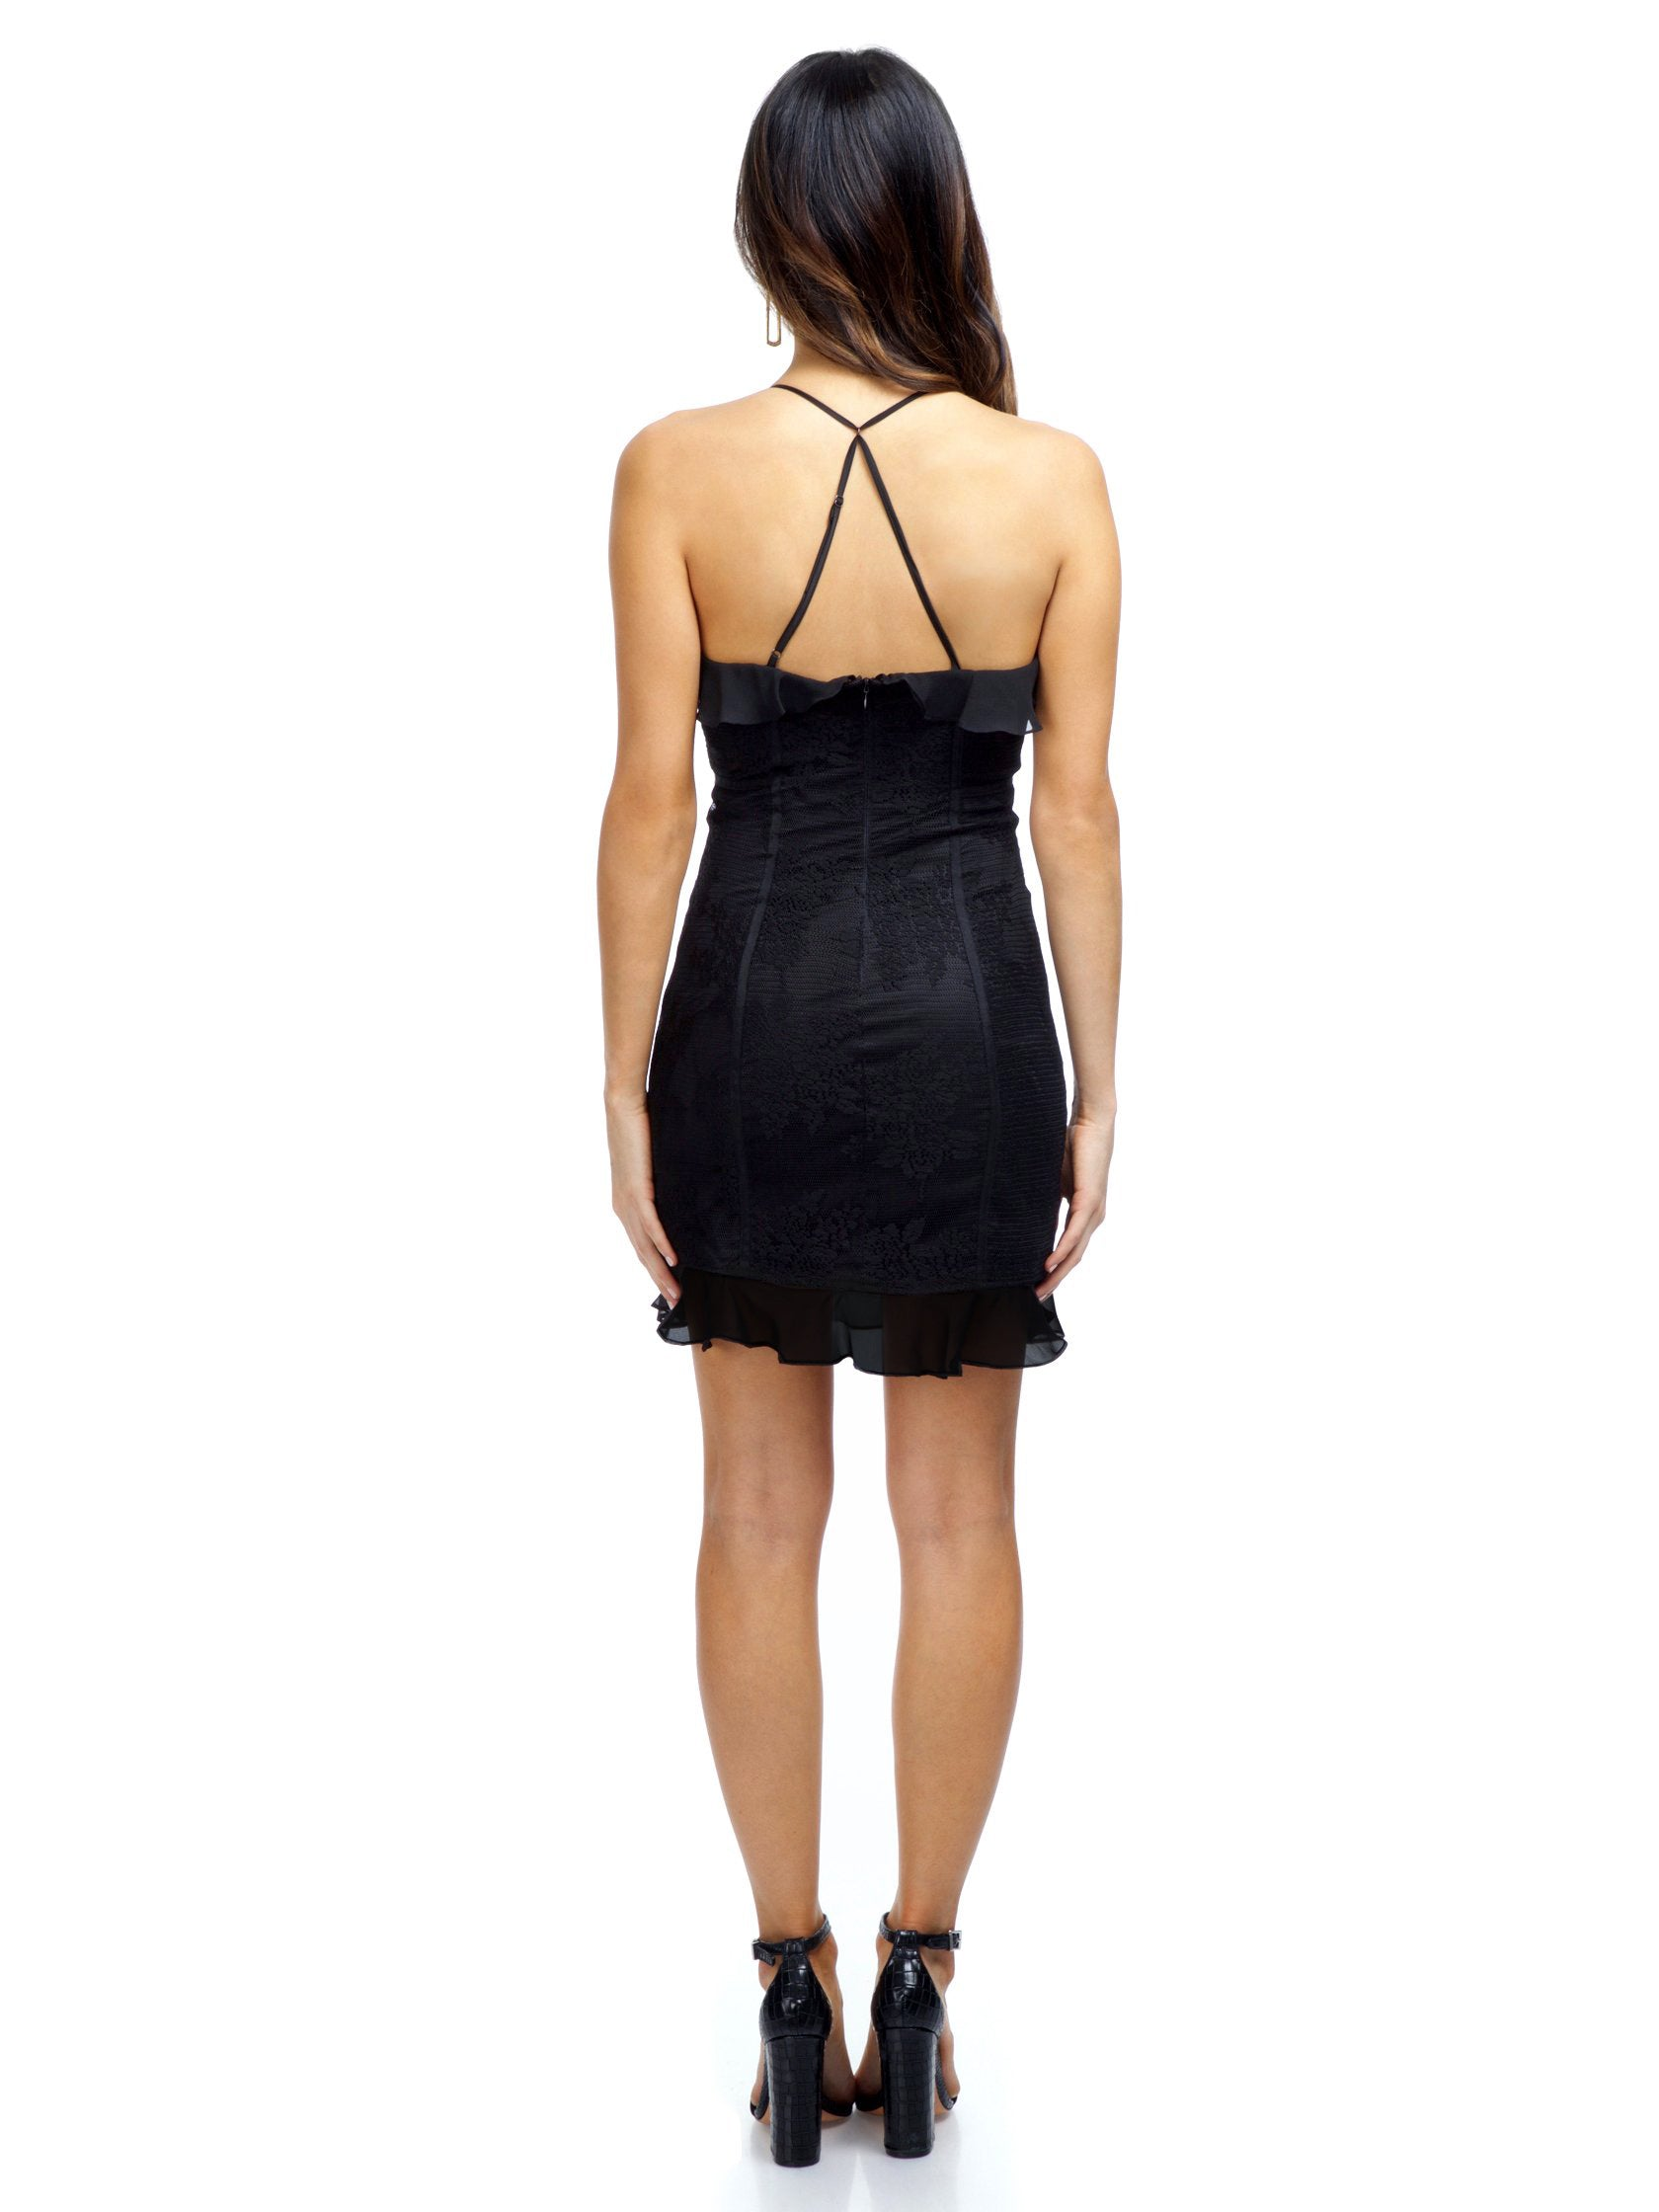 Women wearing a dress rental from The Jetset Diaries called Aphrodite Mini Dress